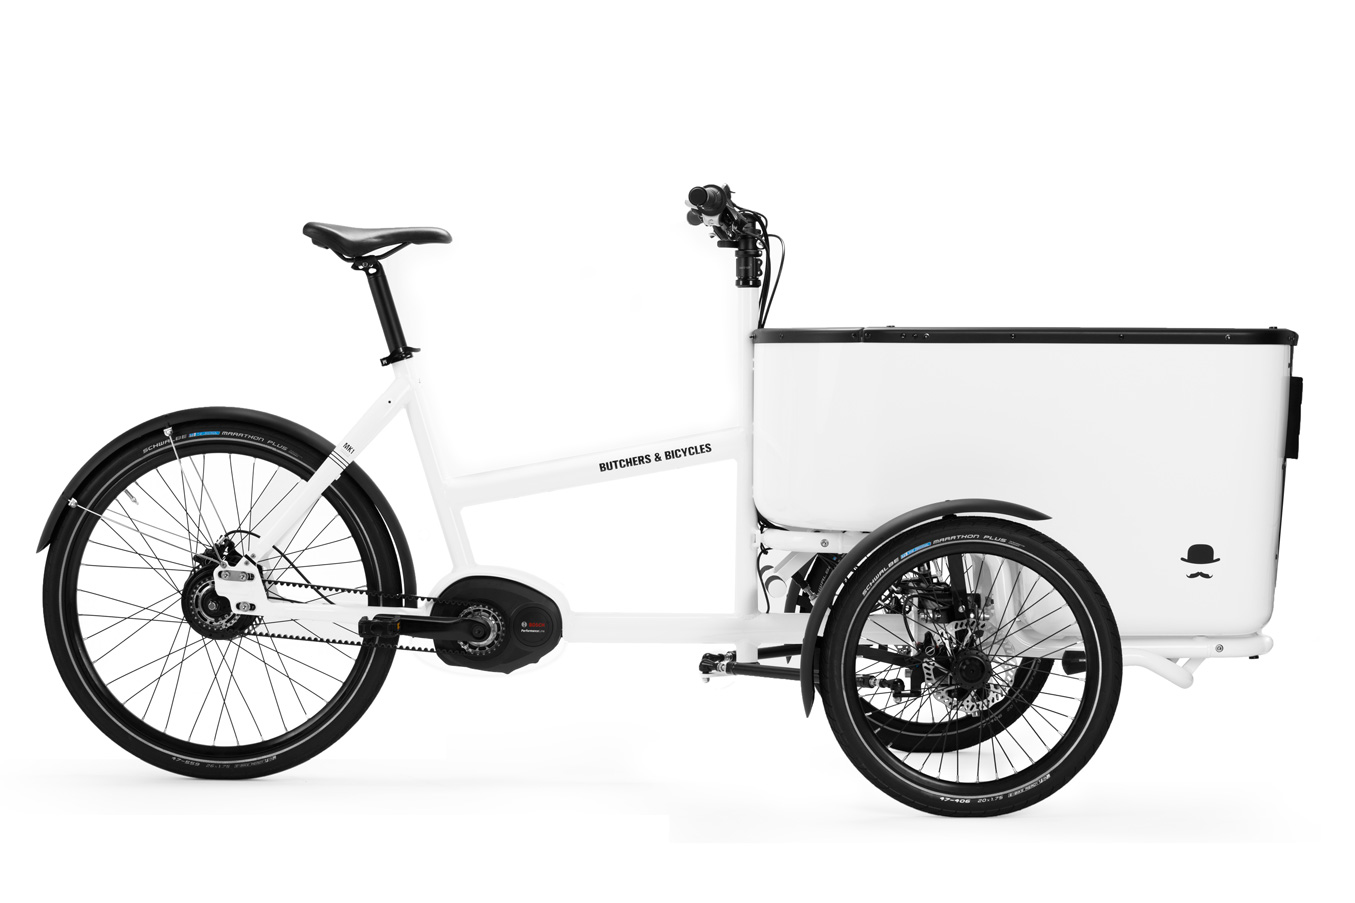 Butchers-and-Bicycles-MK1-E_white